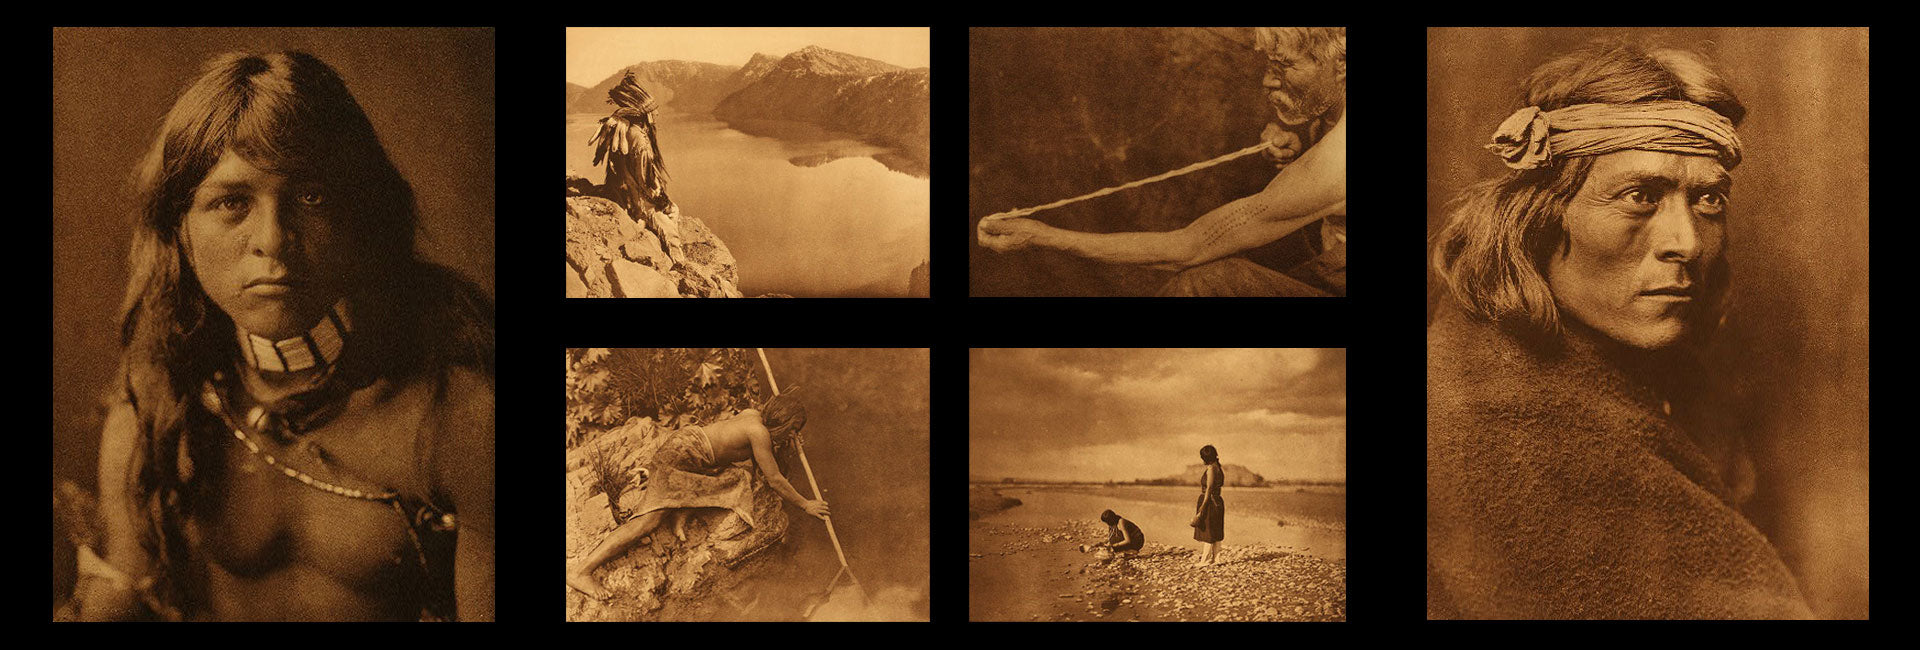 collage of north american indian images hero 2